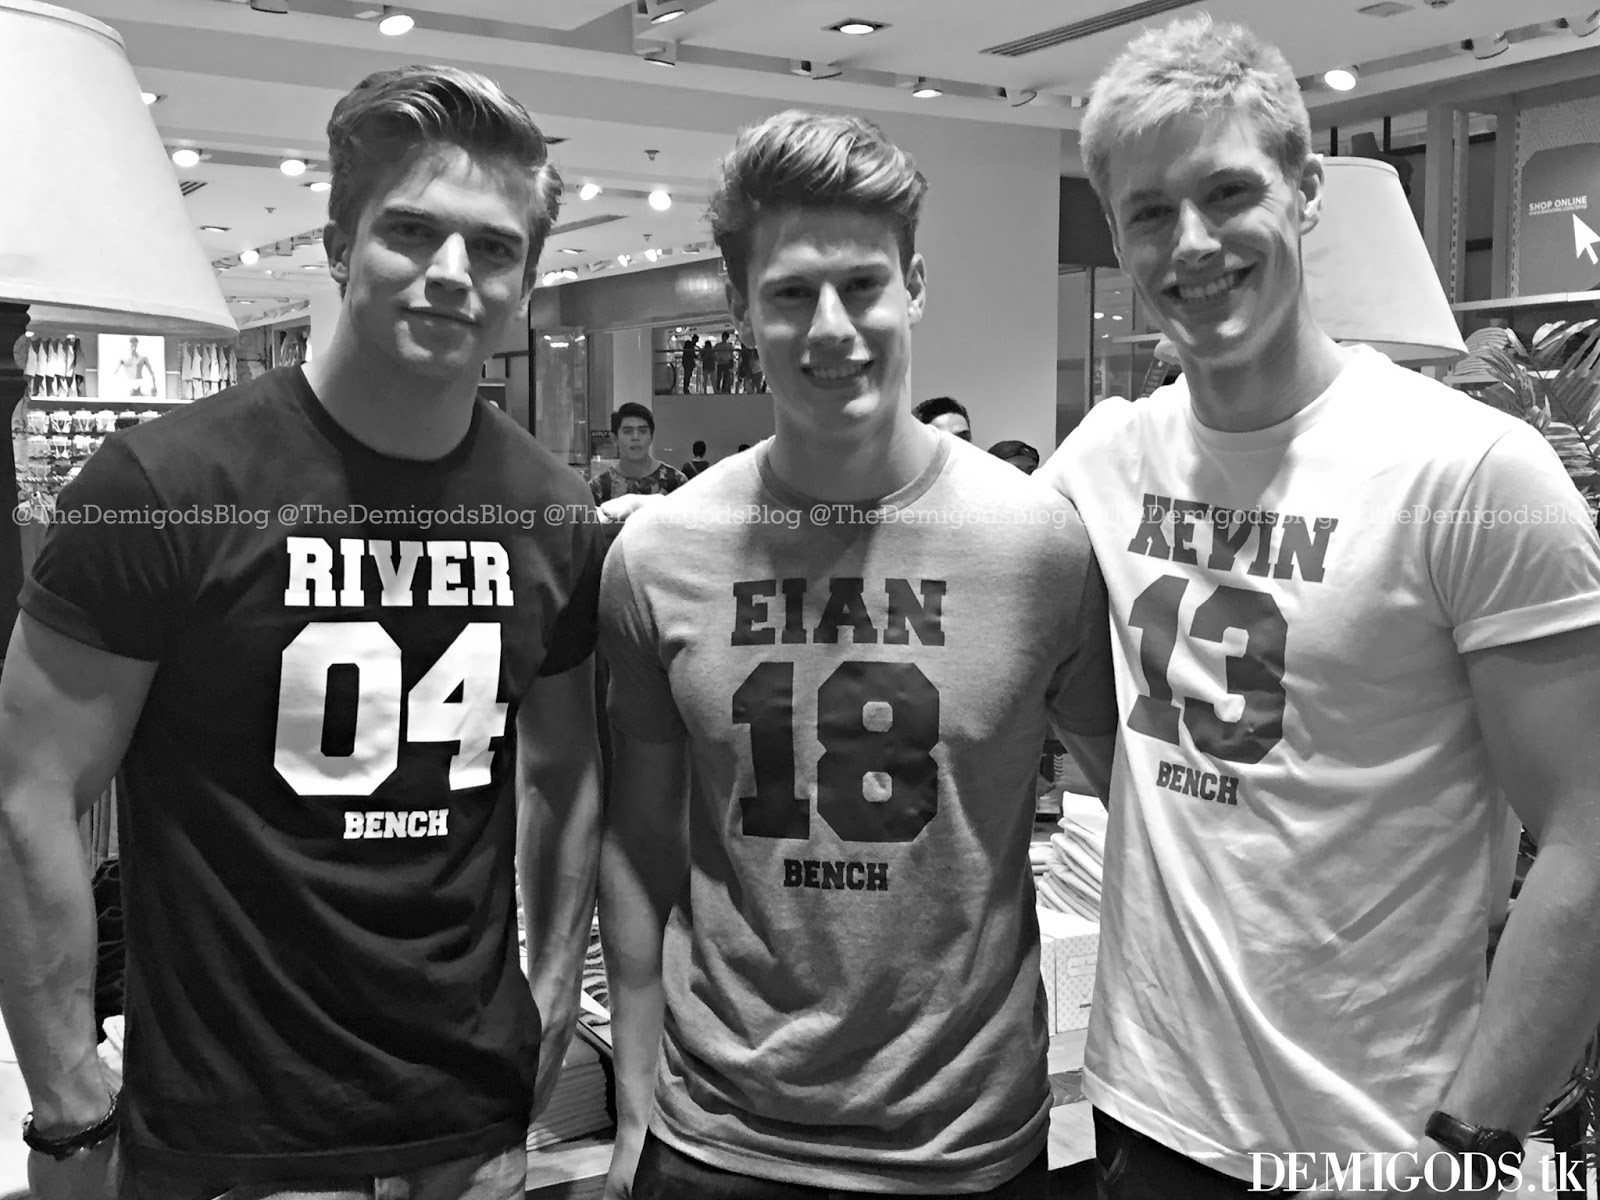 Demigods the bench meet and greet with river viiperi eian scully it was about a month ago when demigods river viiperi eian scully and kevin hubsmith were flown in by retail giant bench in the philippines kristyandbryce Images